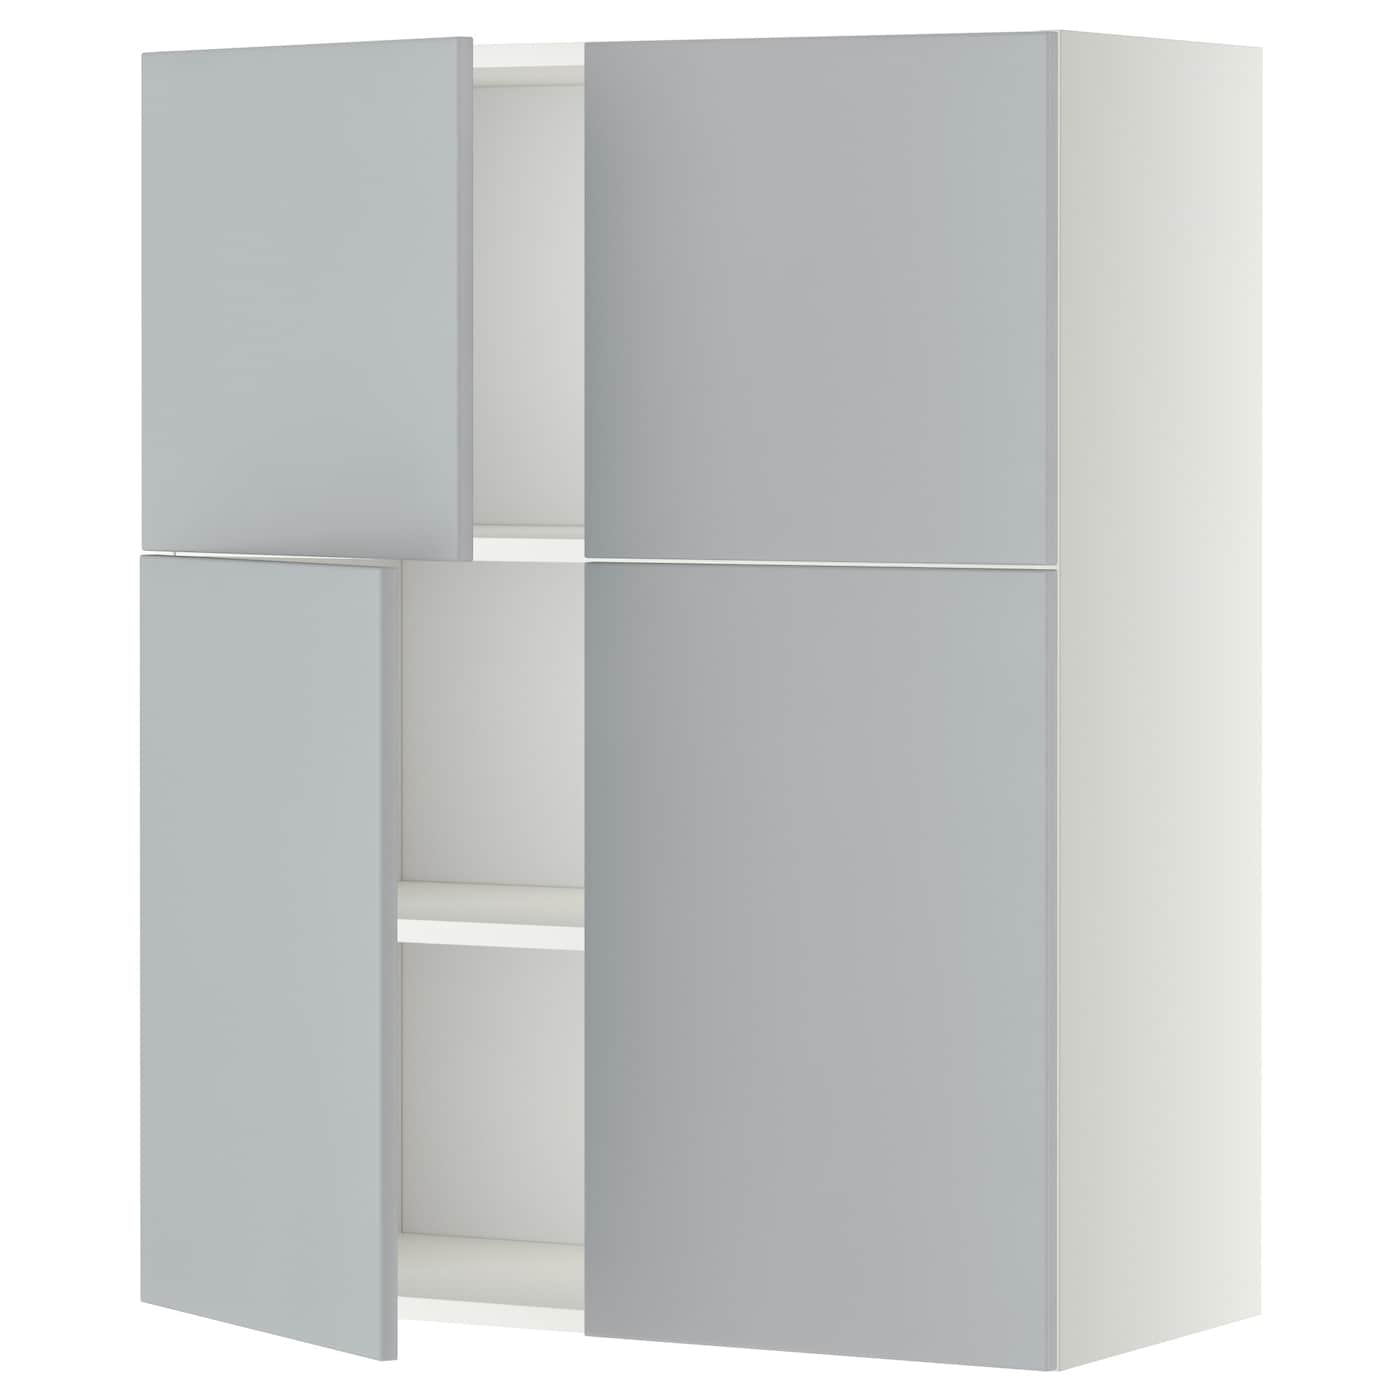 Metod wall cabinet with shelves 4 doors white veddinge for Black kitchen cabinet doors